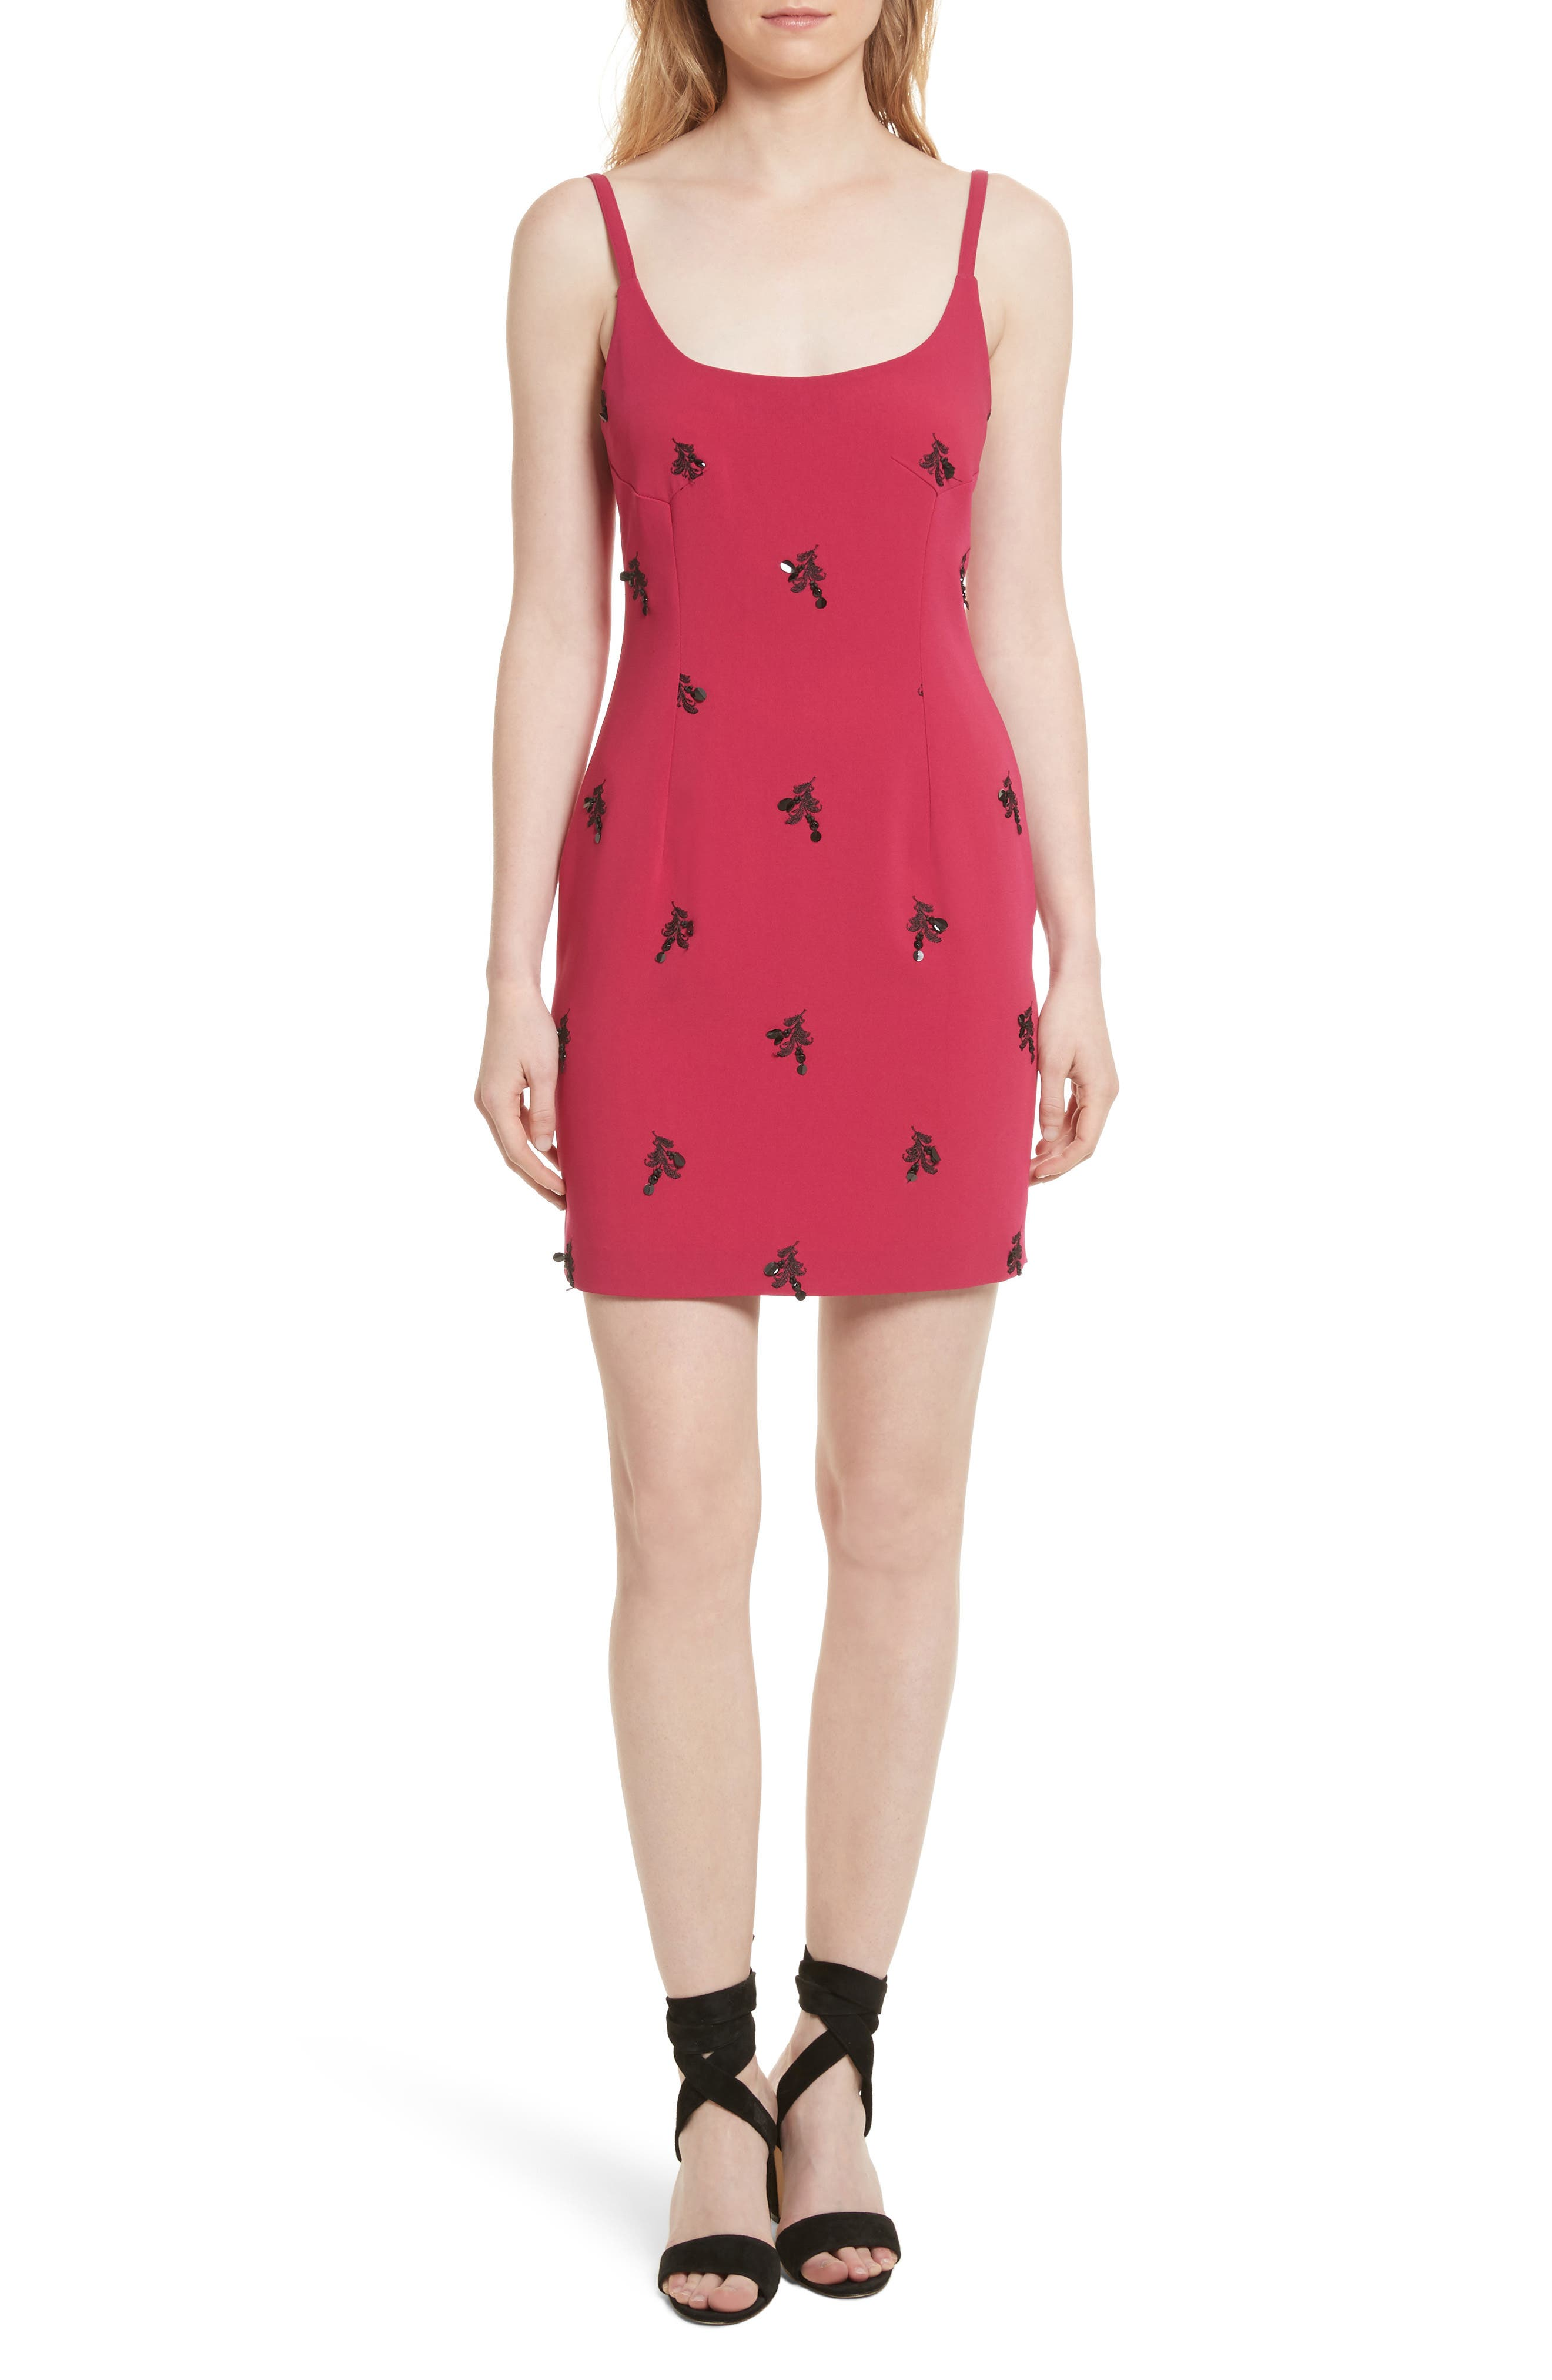 Gal Embroidered Lace-Up Back Dress,                         Main,                         color, Cerise/ Black